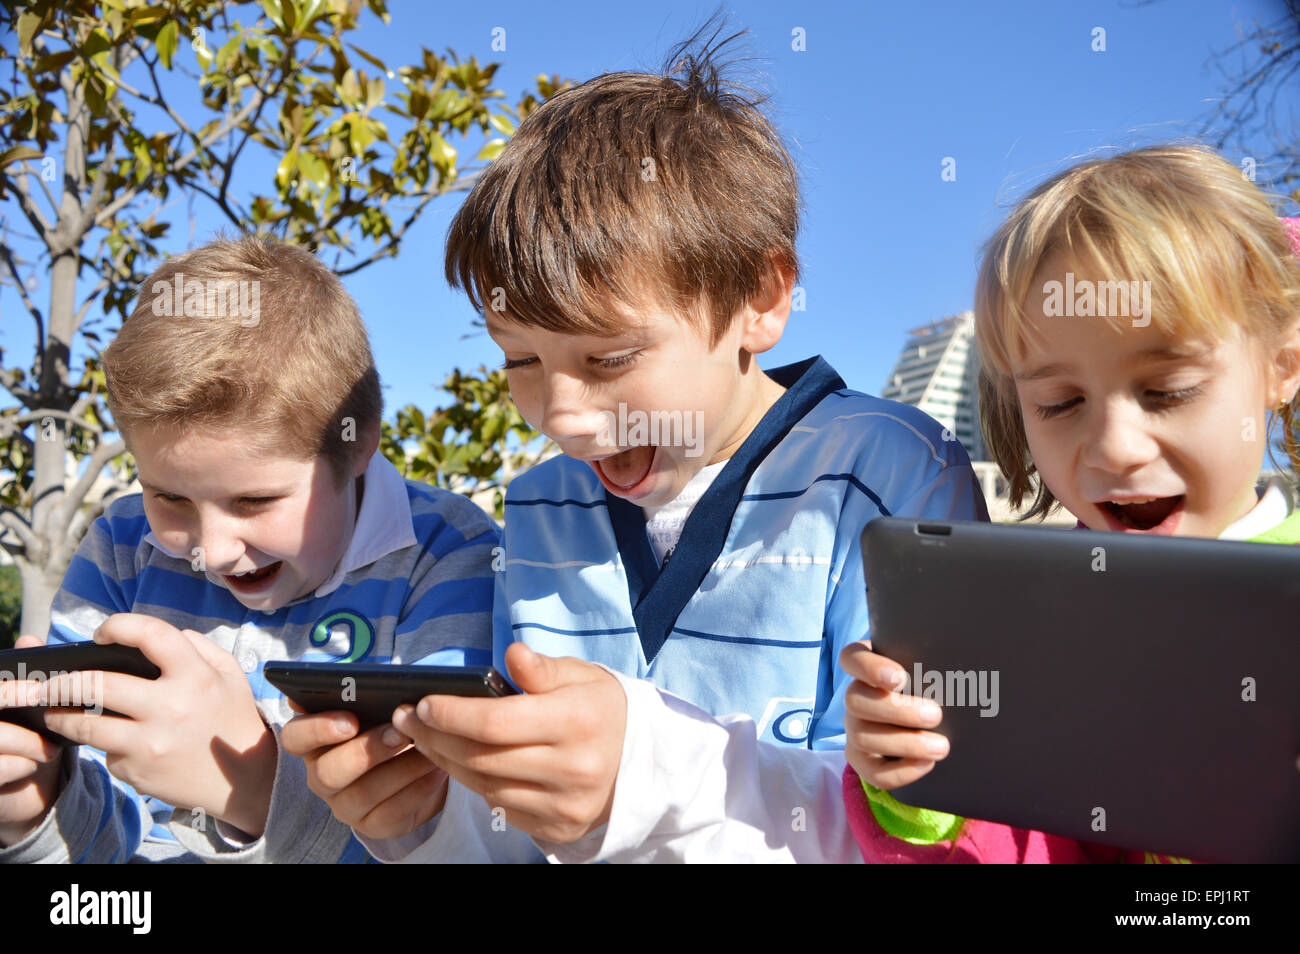 Kids with smartphone Photo Stock